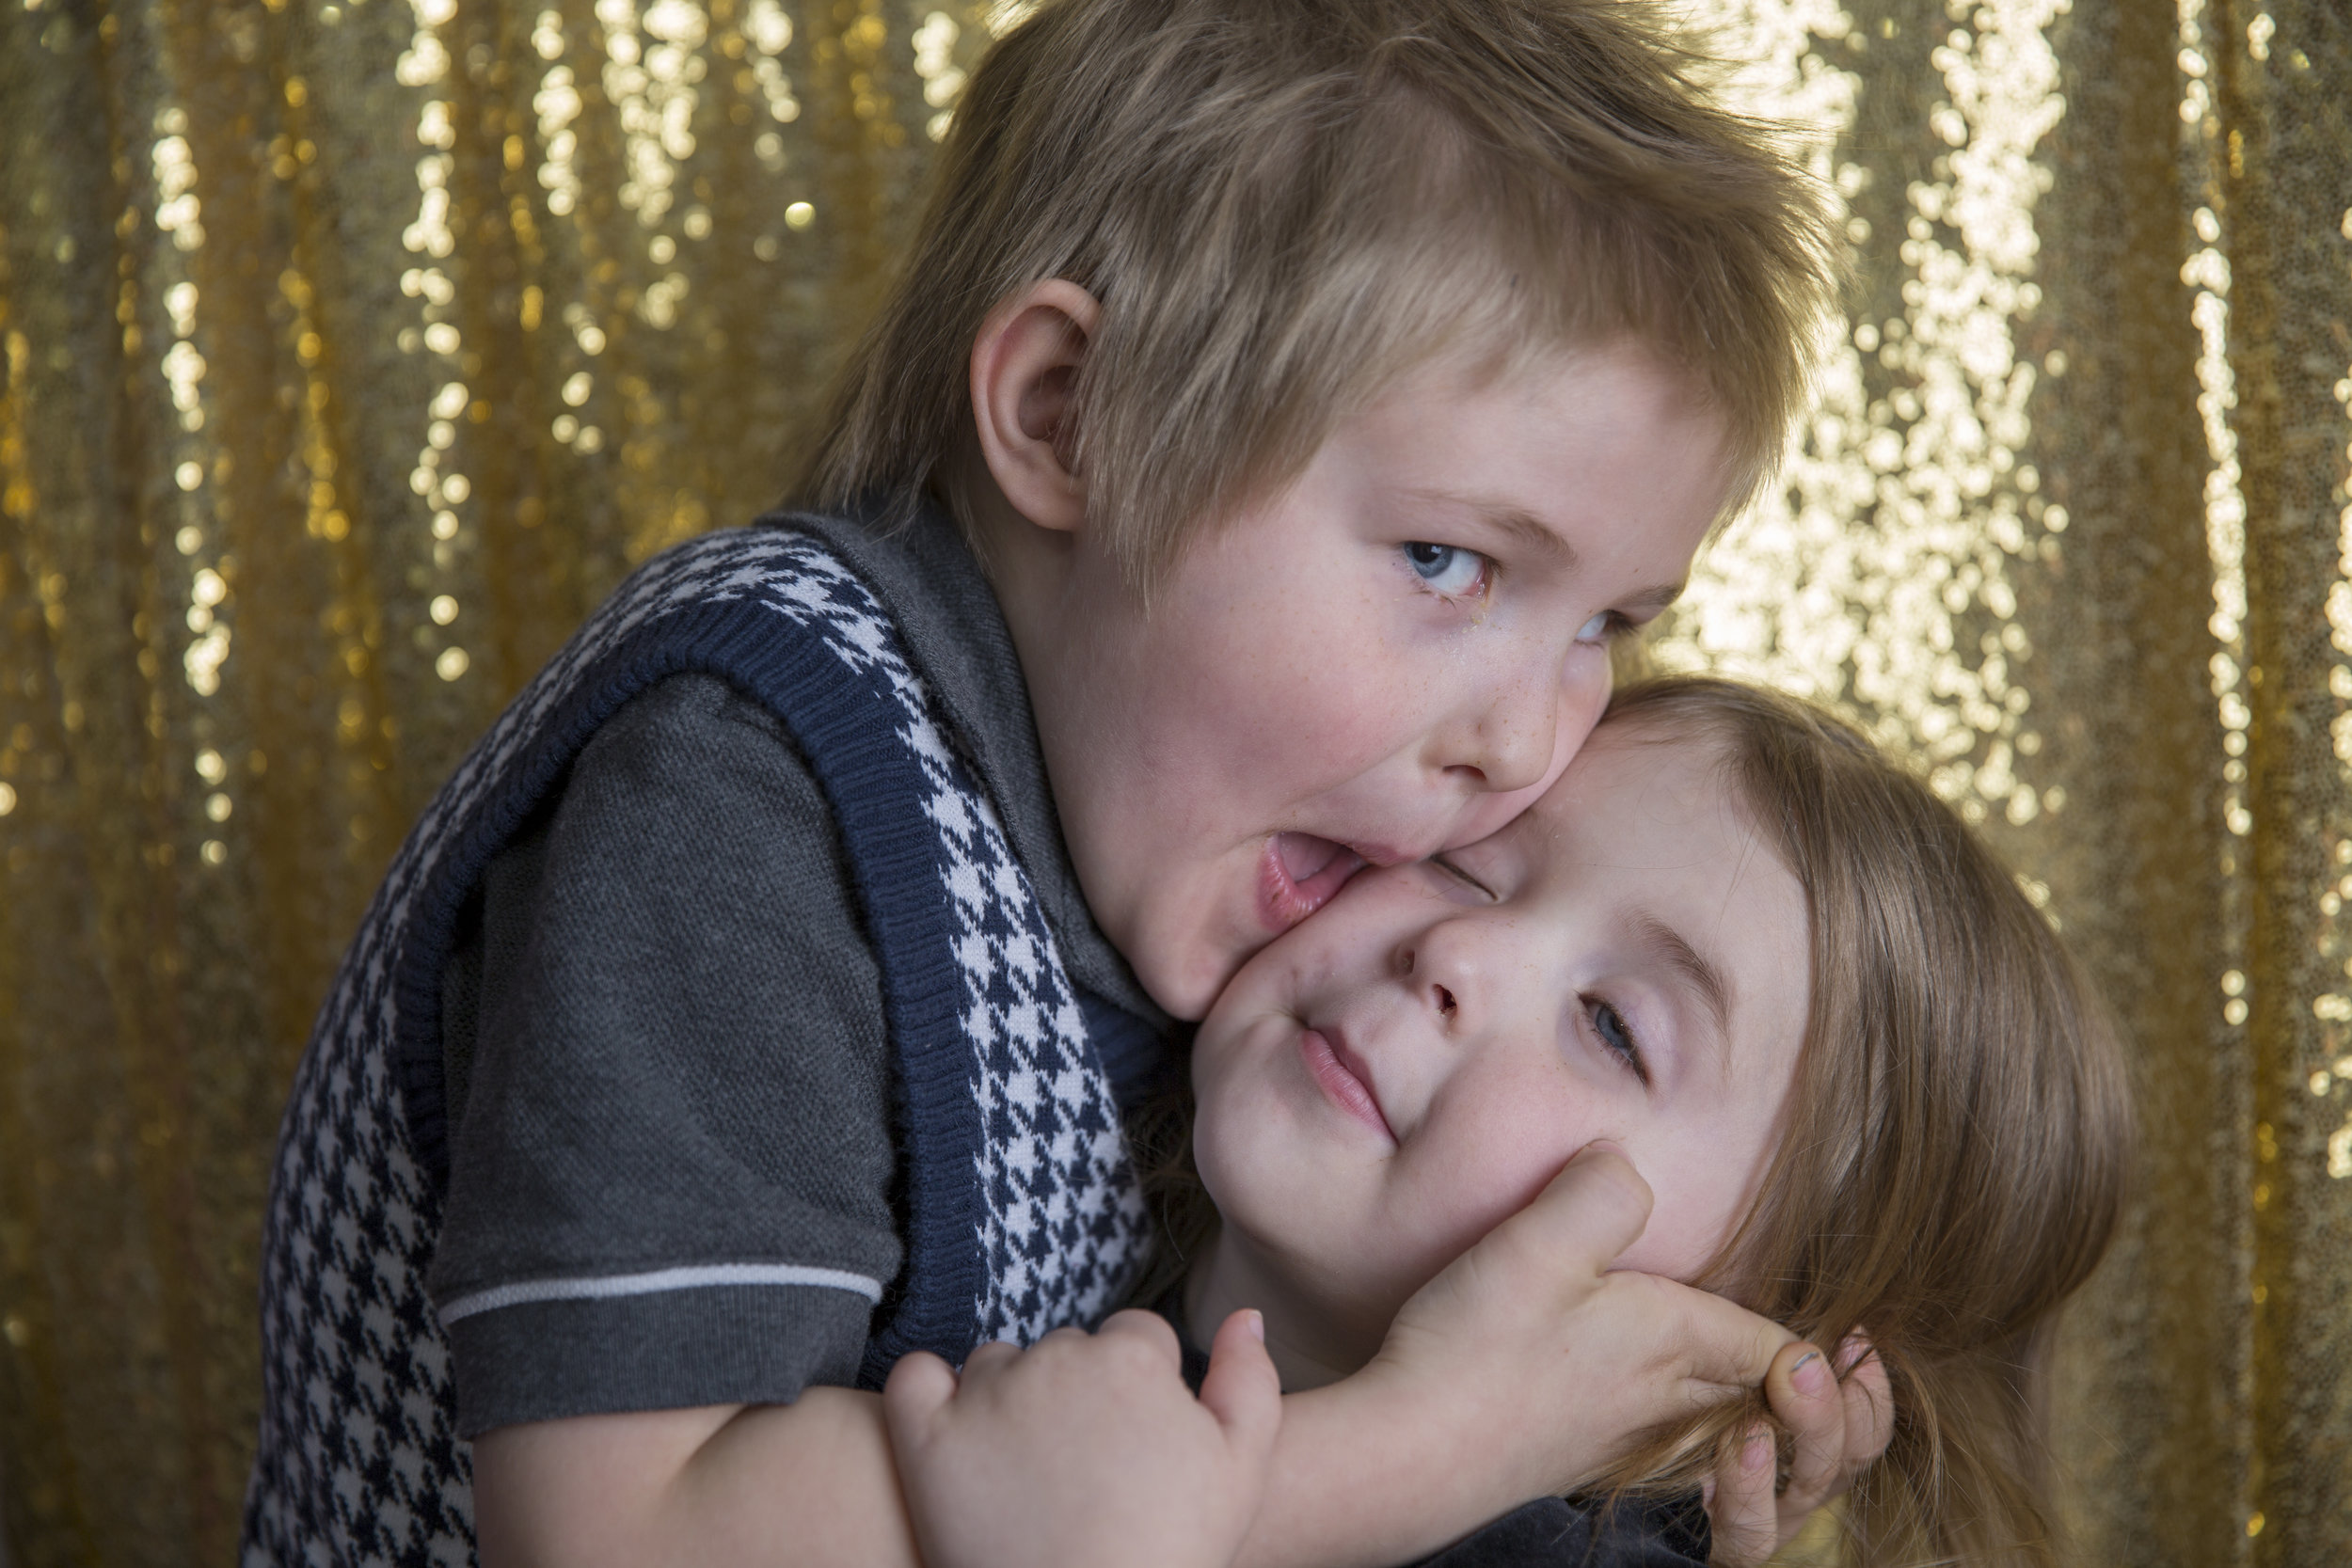 These are my two youngest kids, Ryder - age 5 and Keira - age 3.